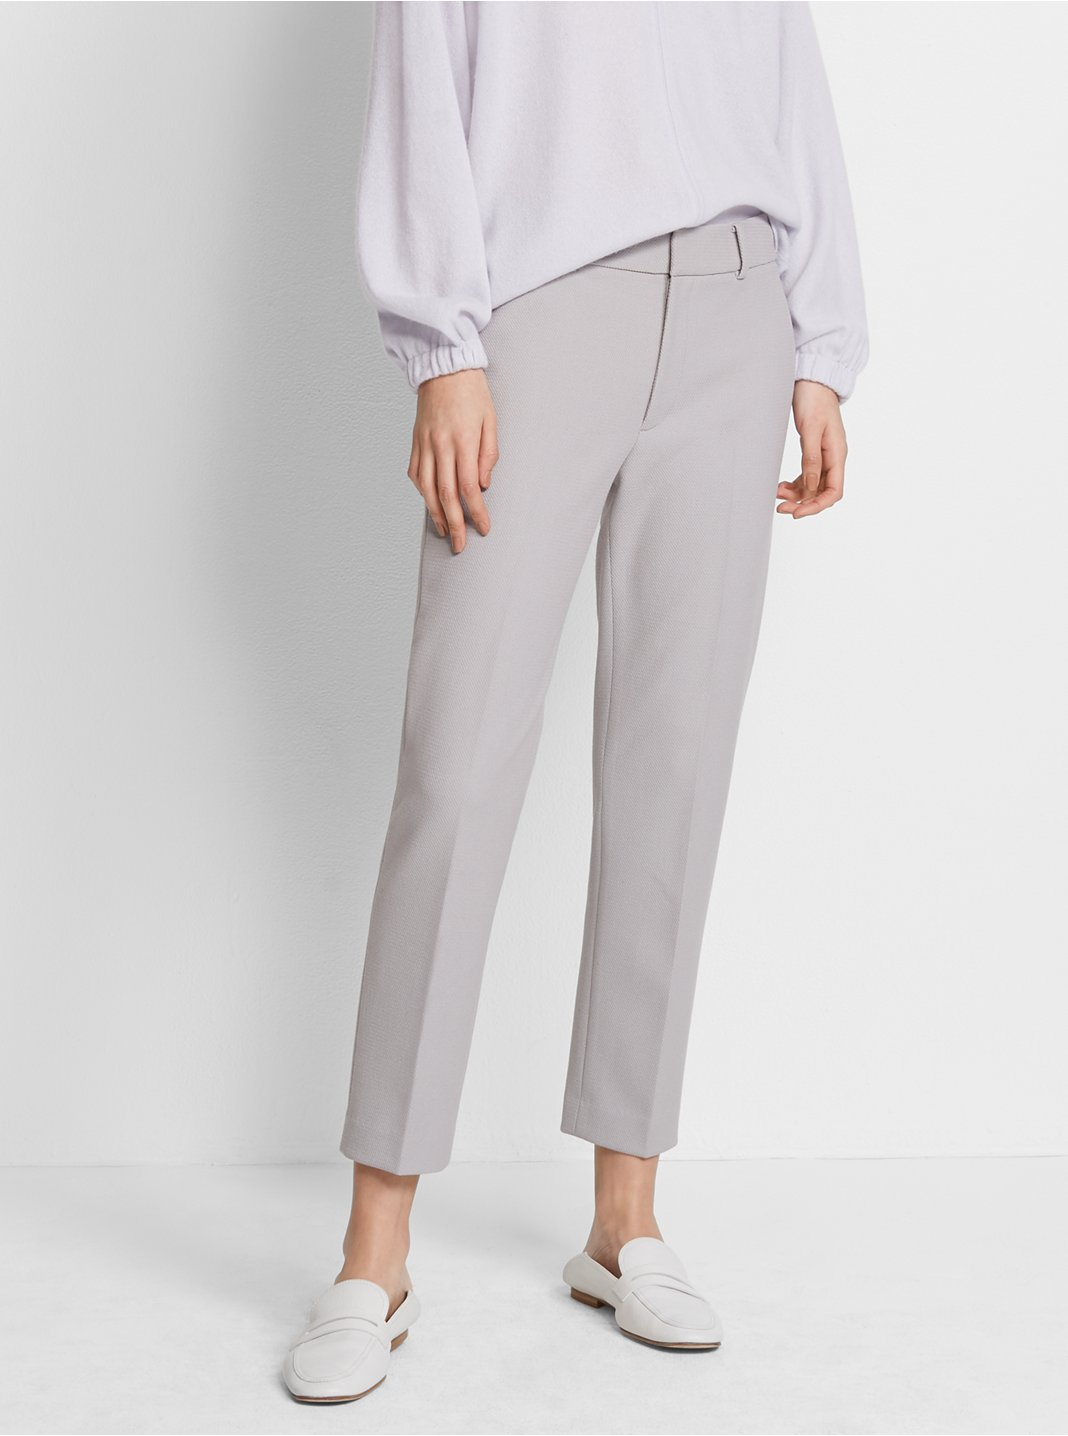 Remi Textured Pant